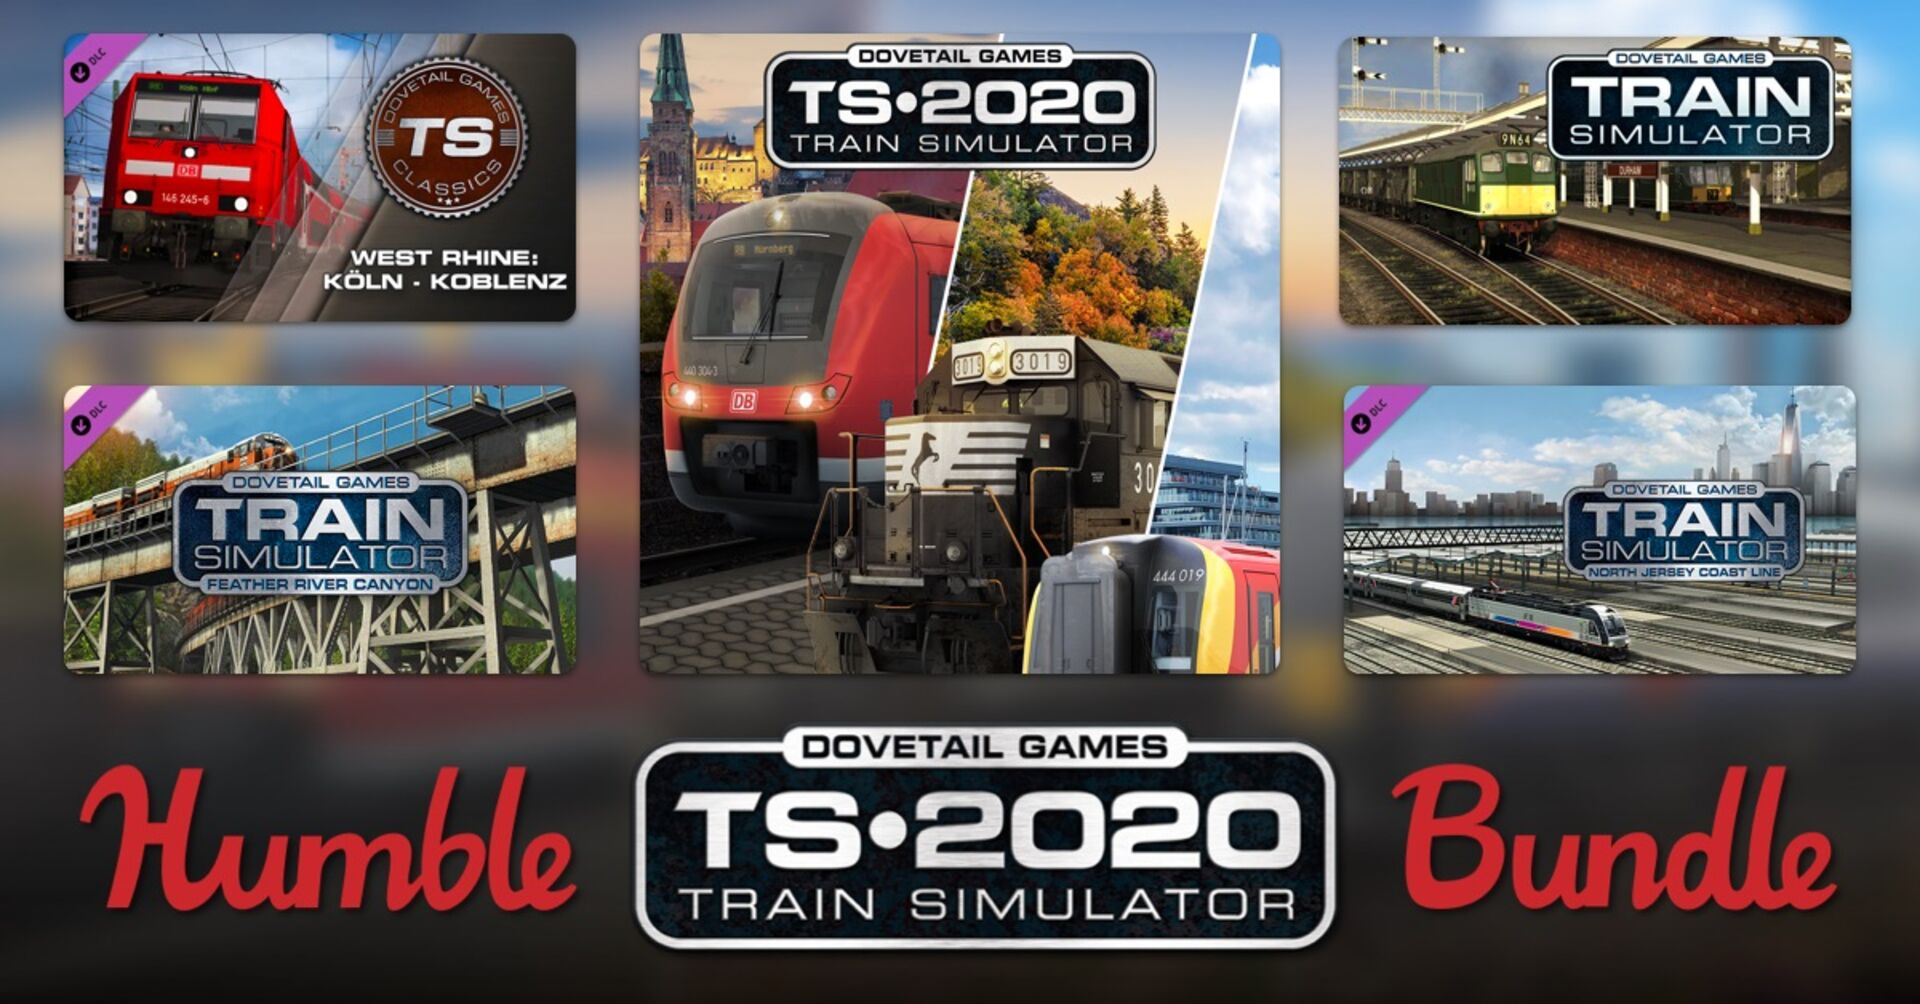 The Humble Train Simulator bundle takes you on a direct